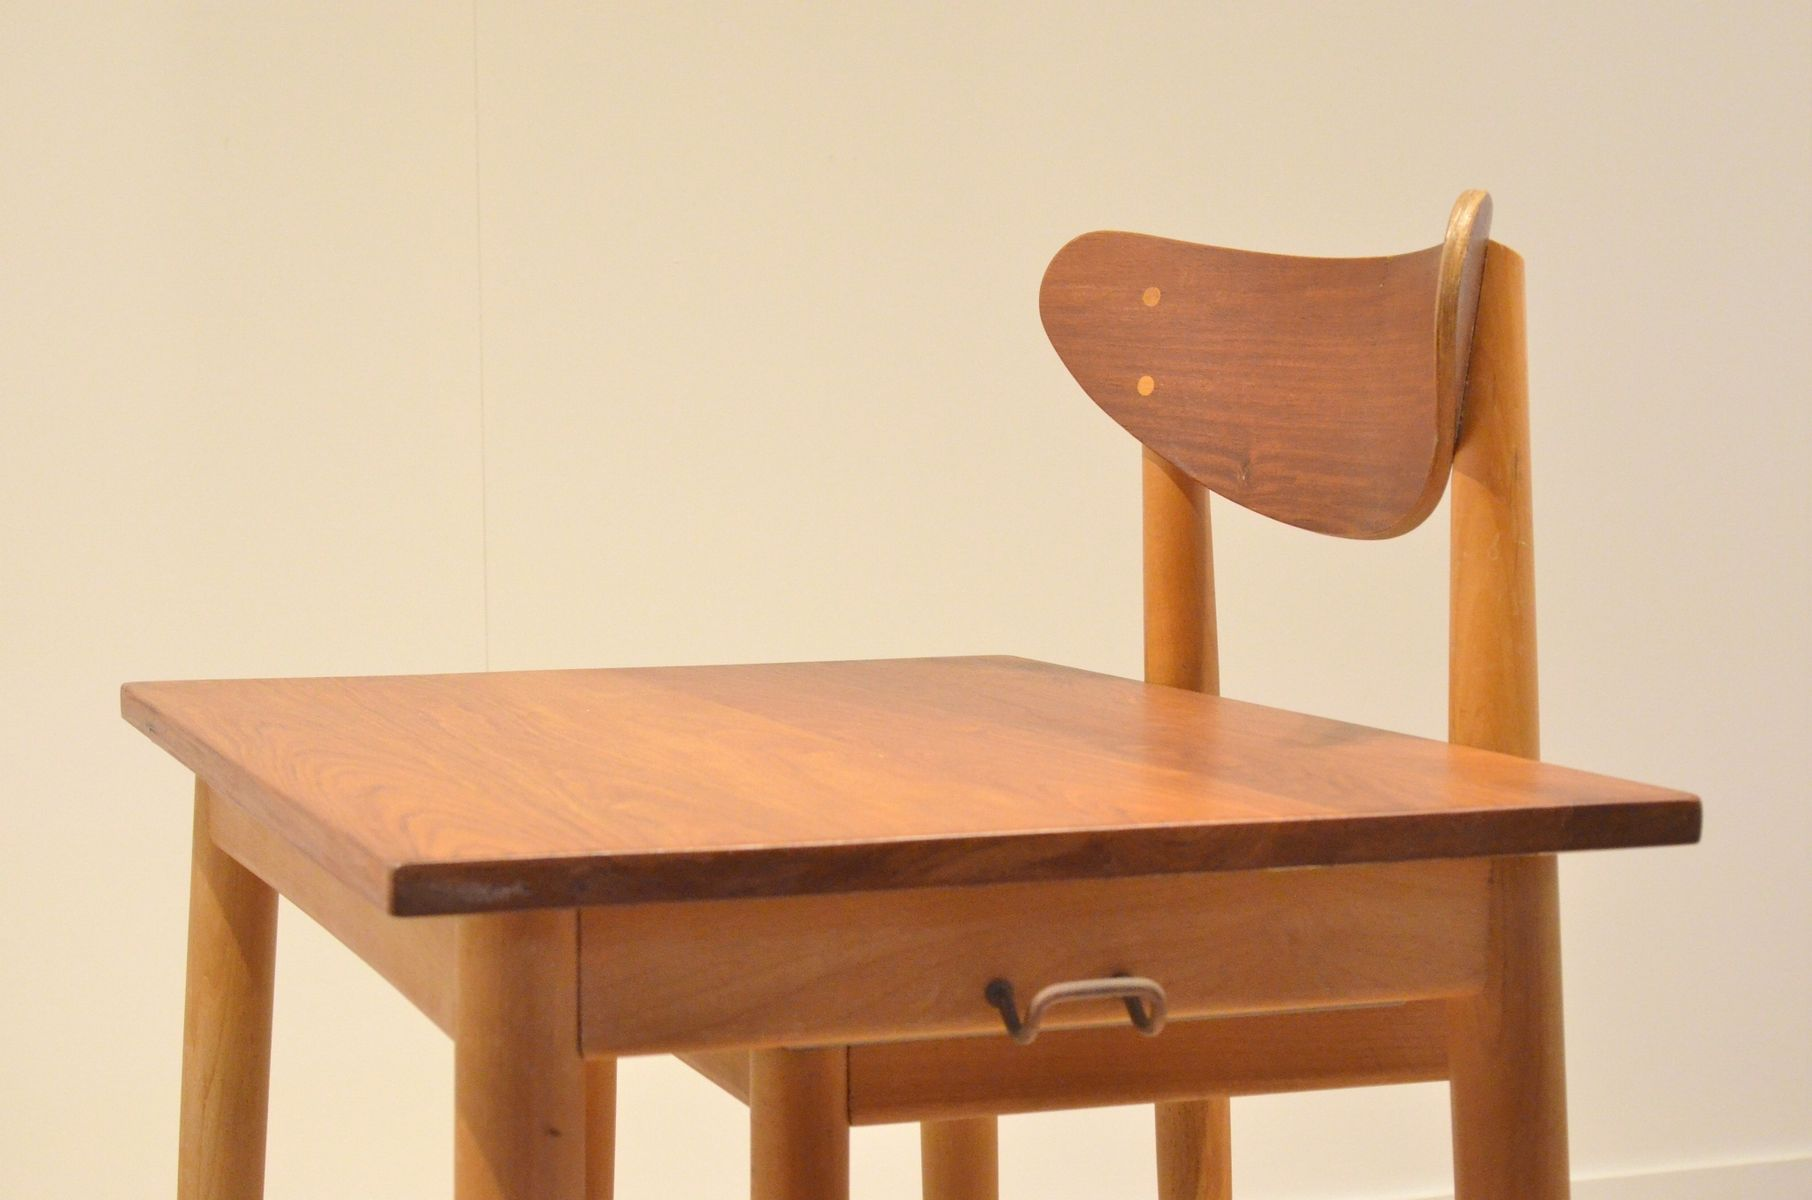 Bicolored School Desk and Chair by S E Fryklund for Hagafors